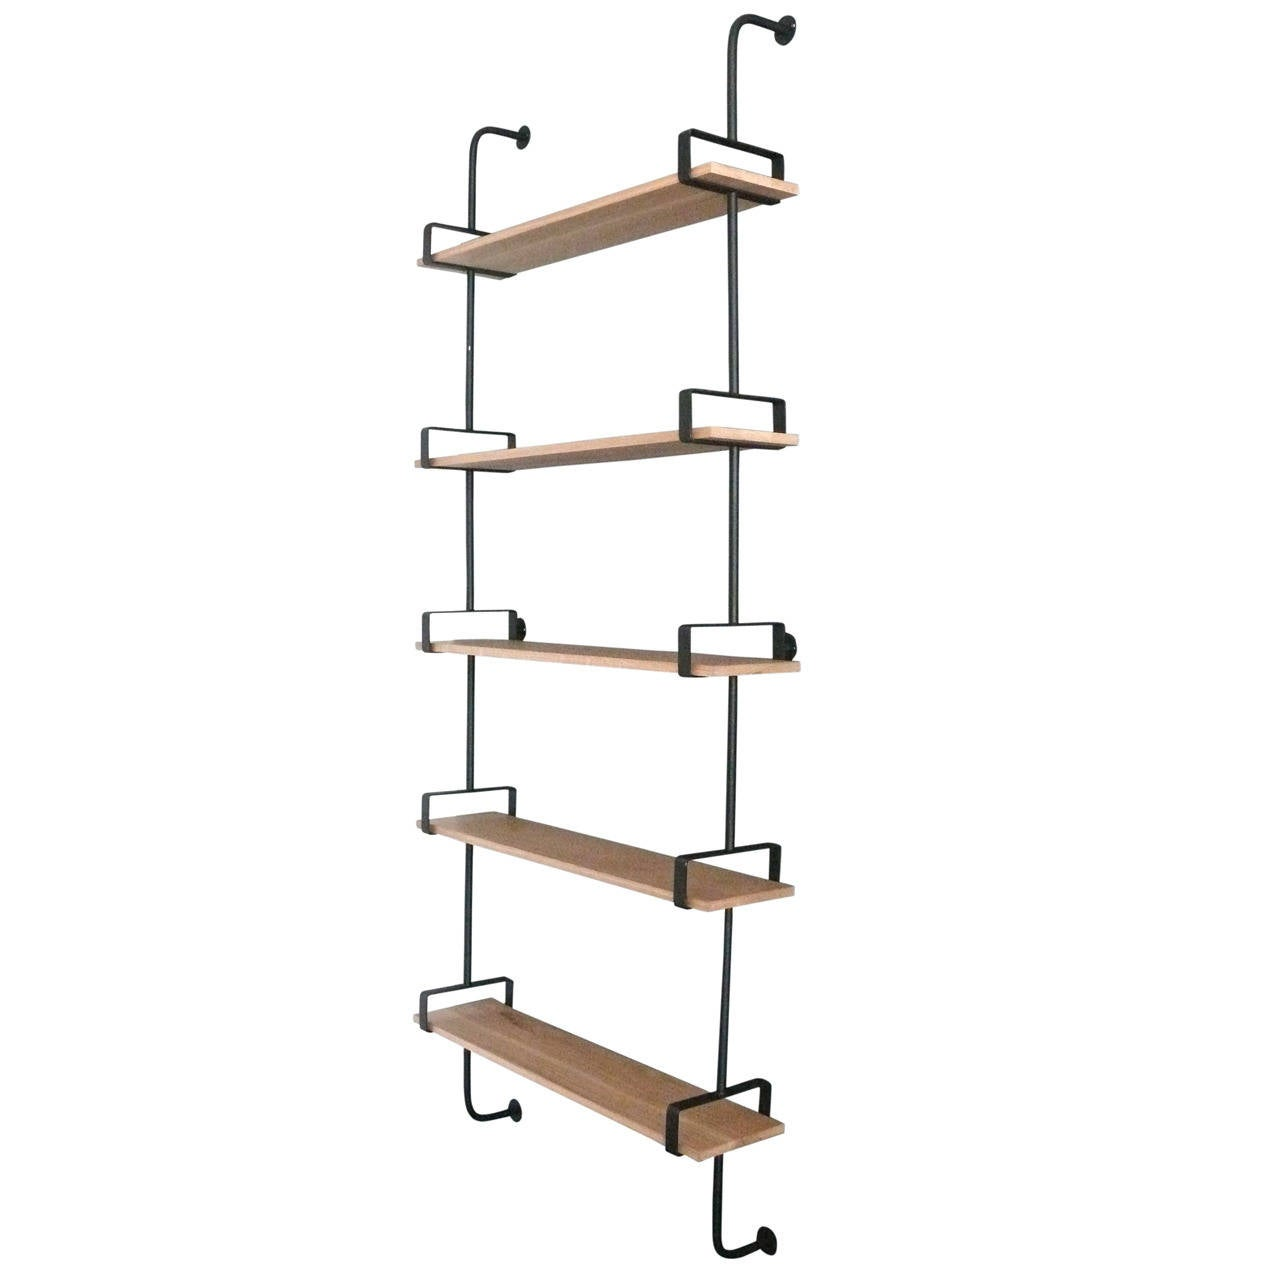 French Iron and Oak Wall Shelves 1